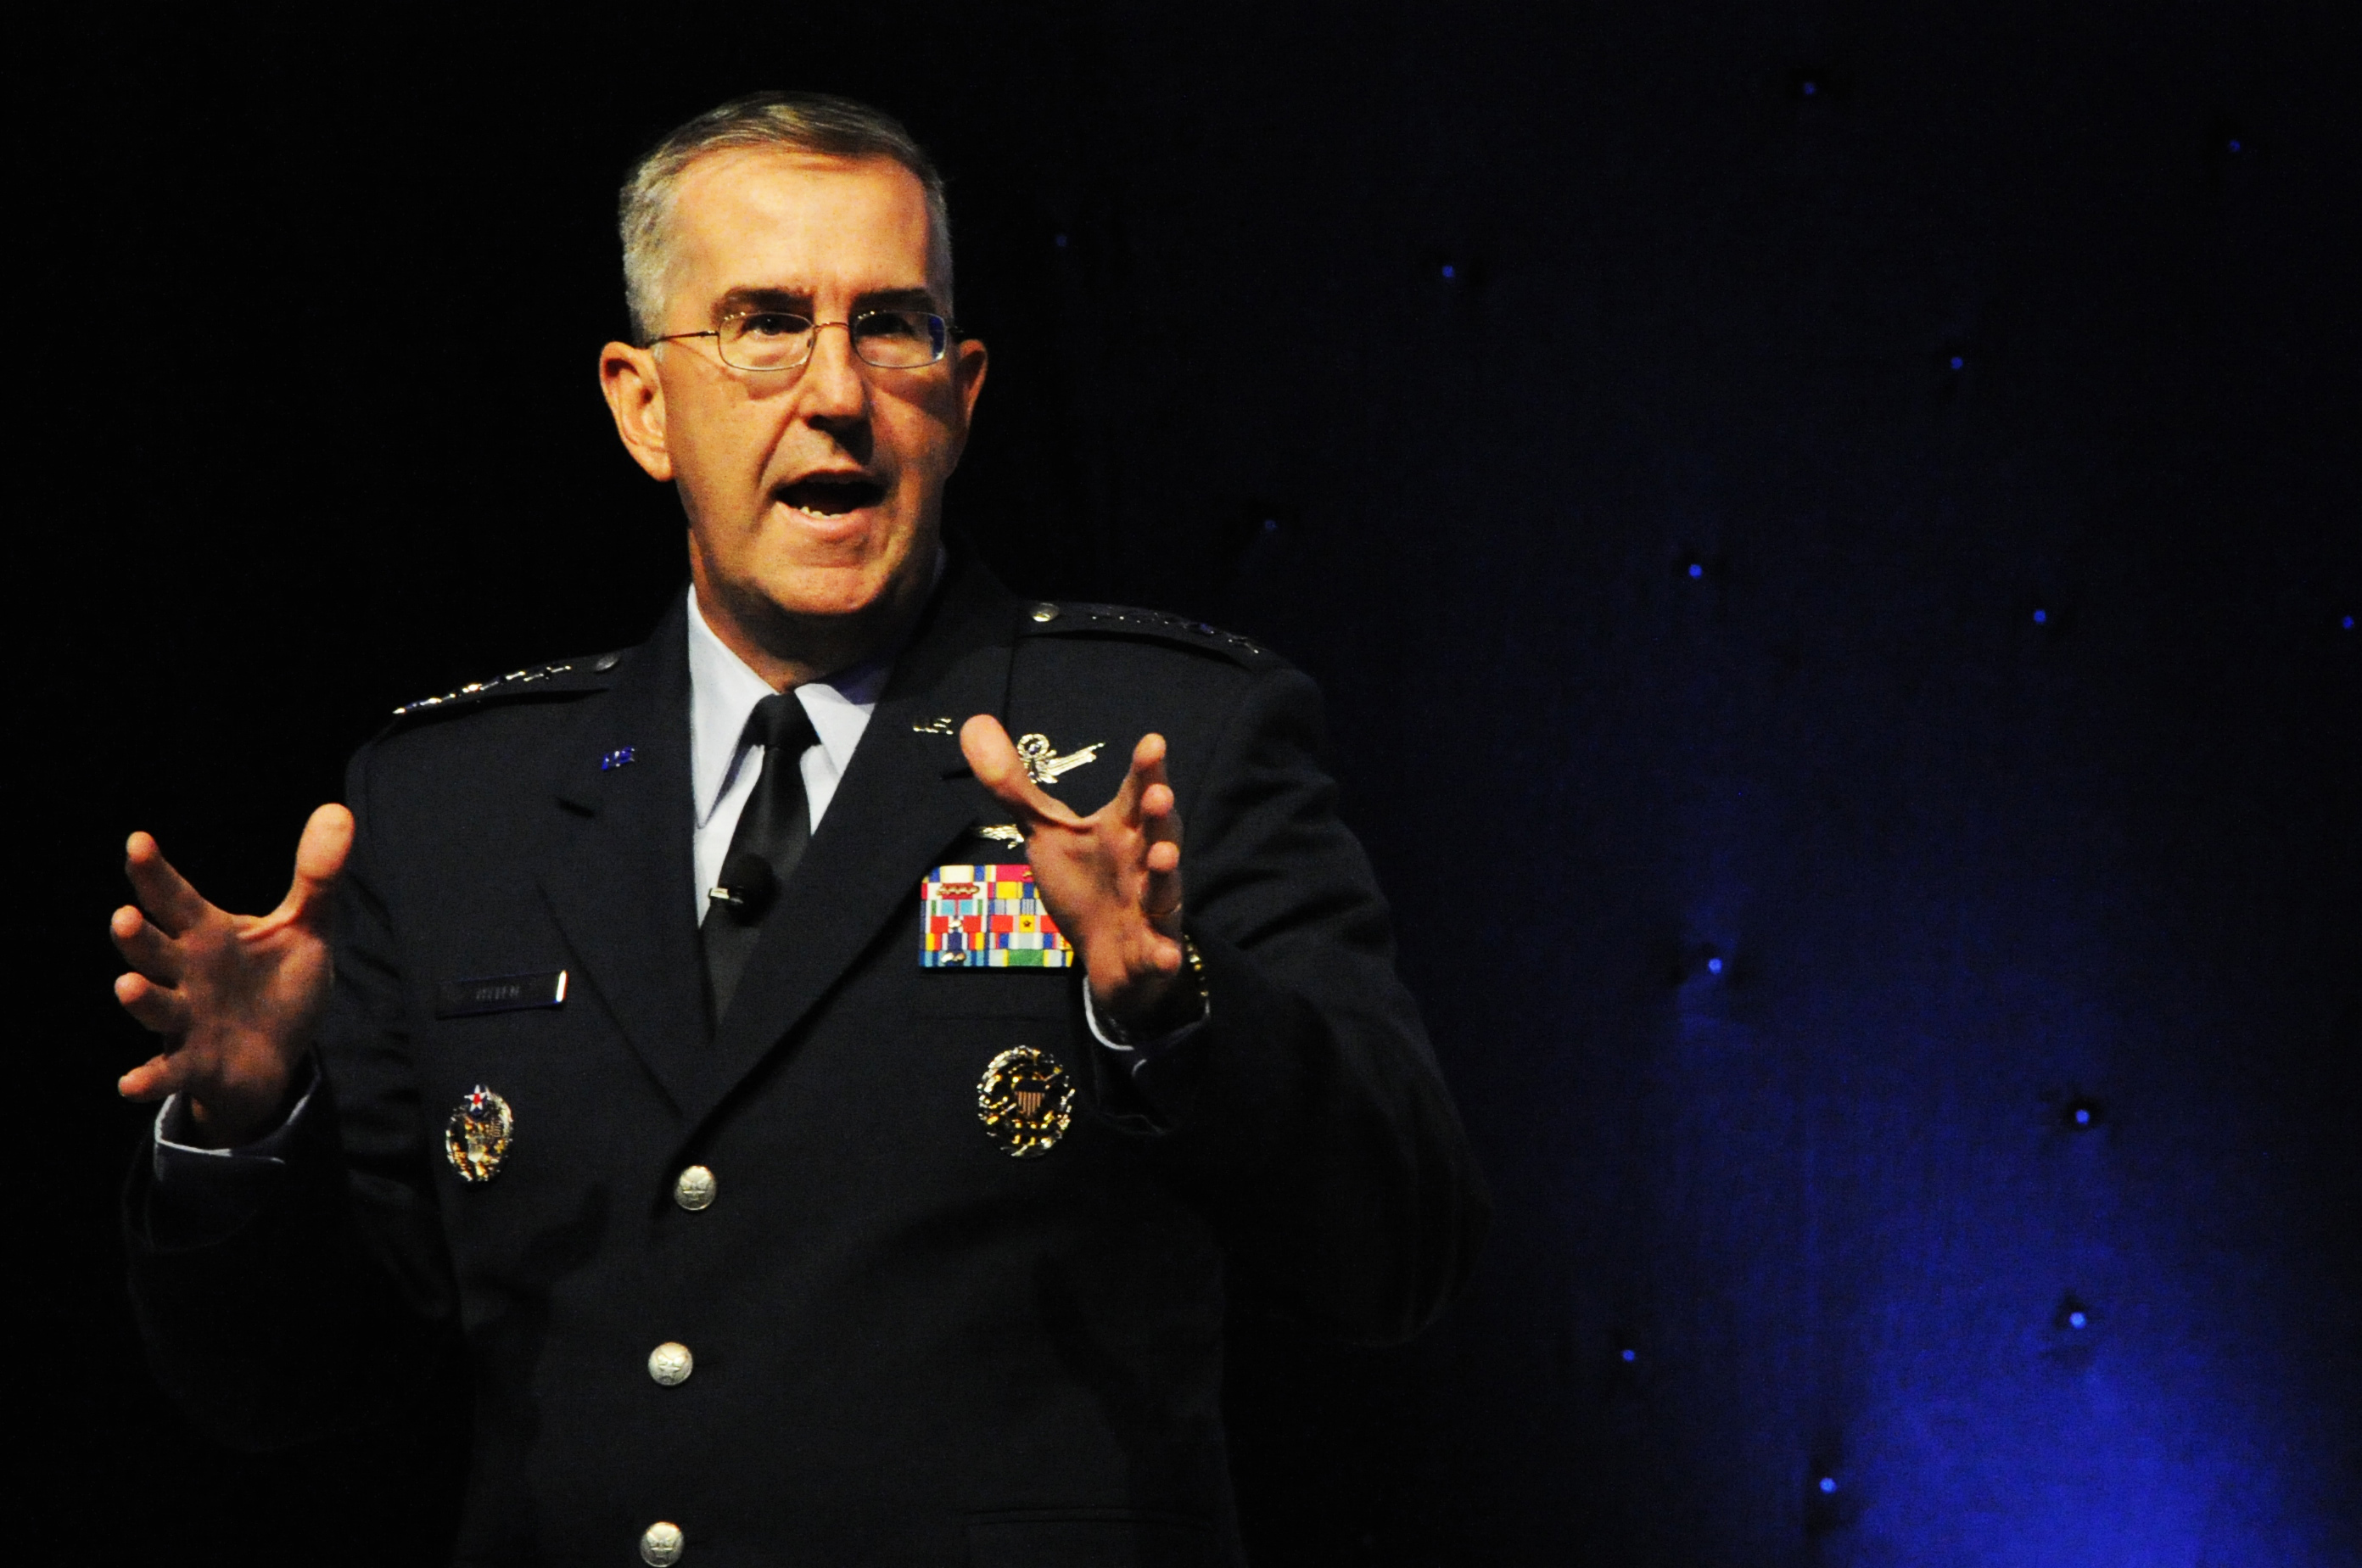 STRATCOM head would push back on illegal nuclear launch order